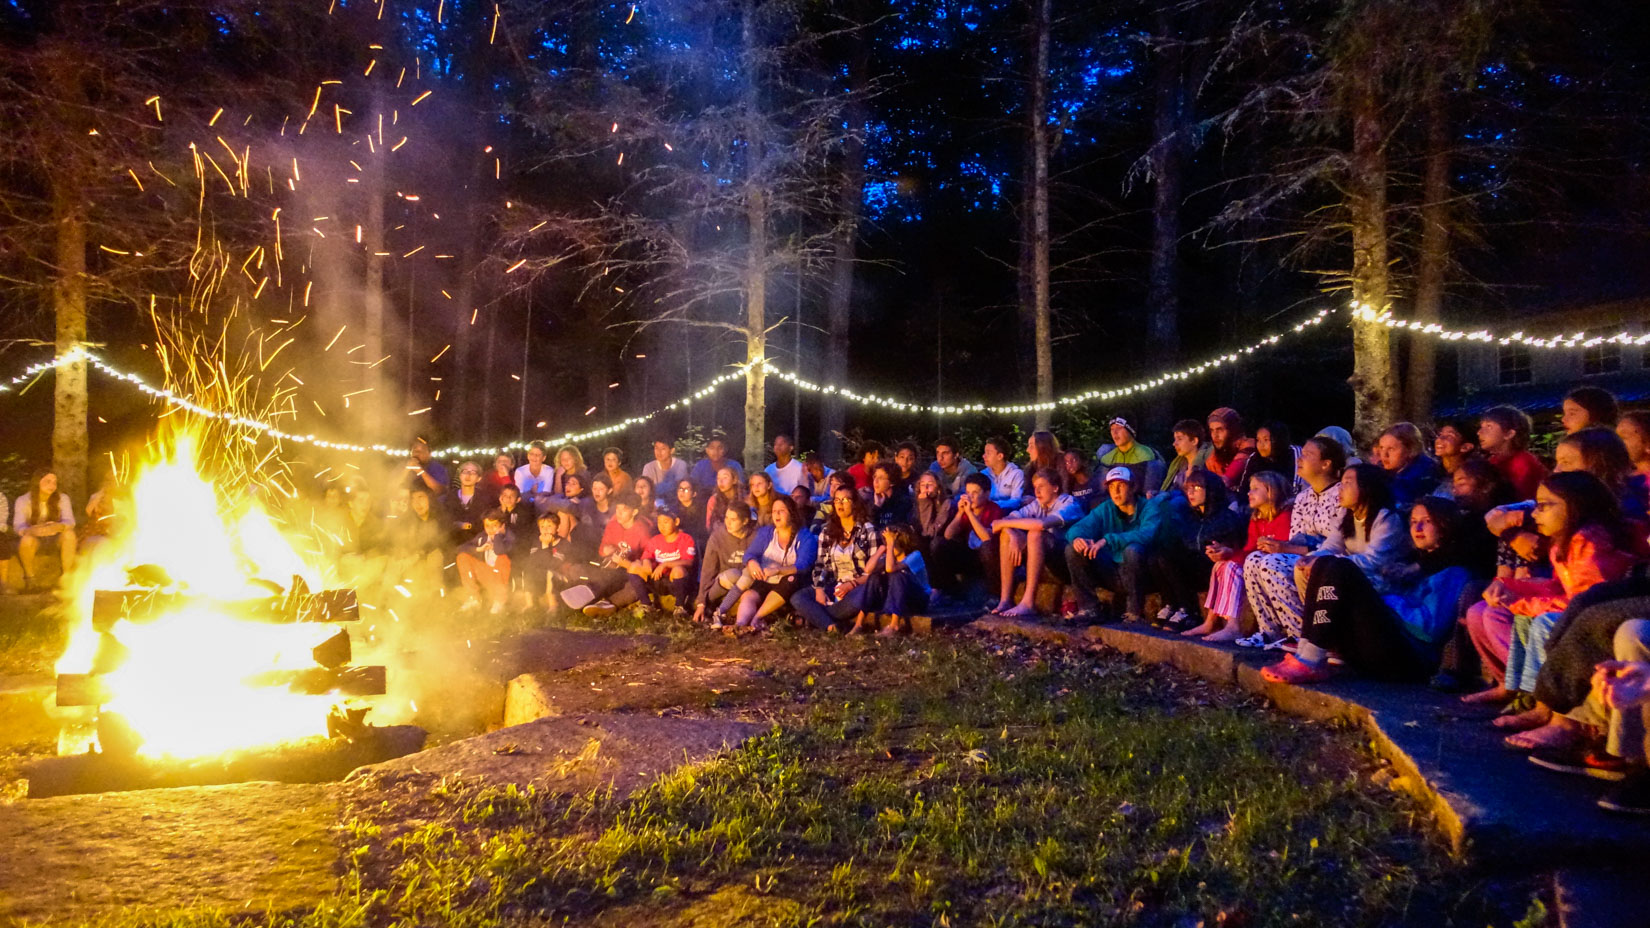 Campers gathered around a campfire at night.